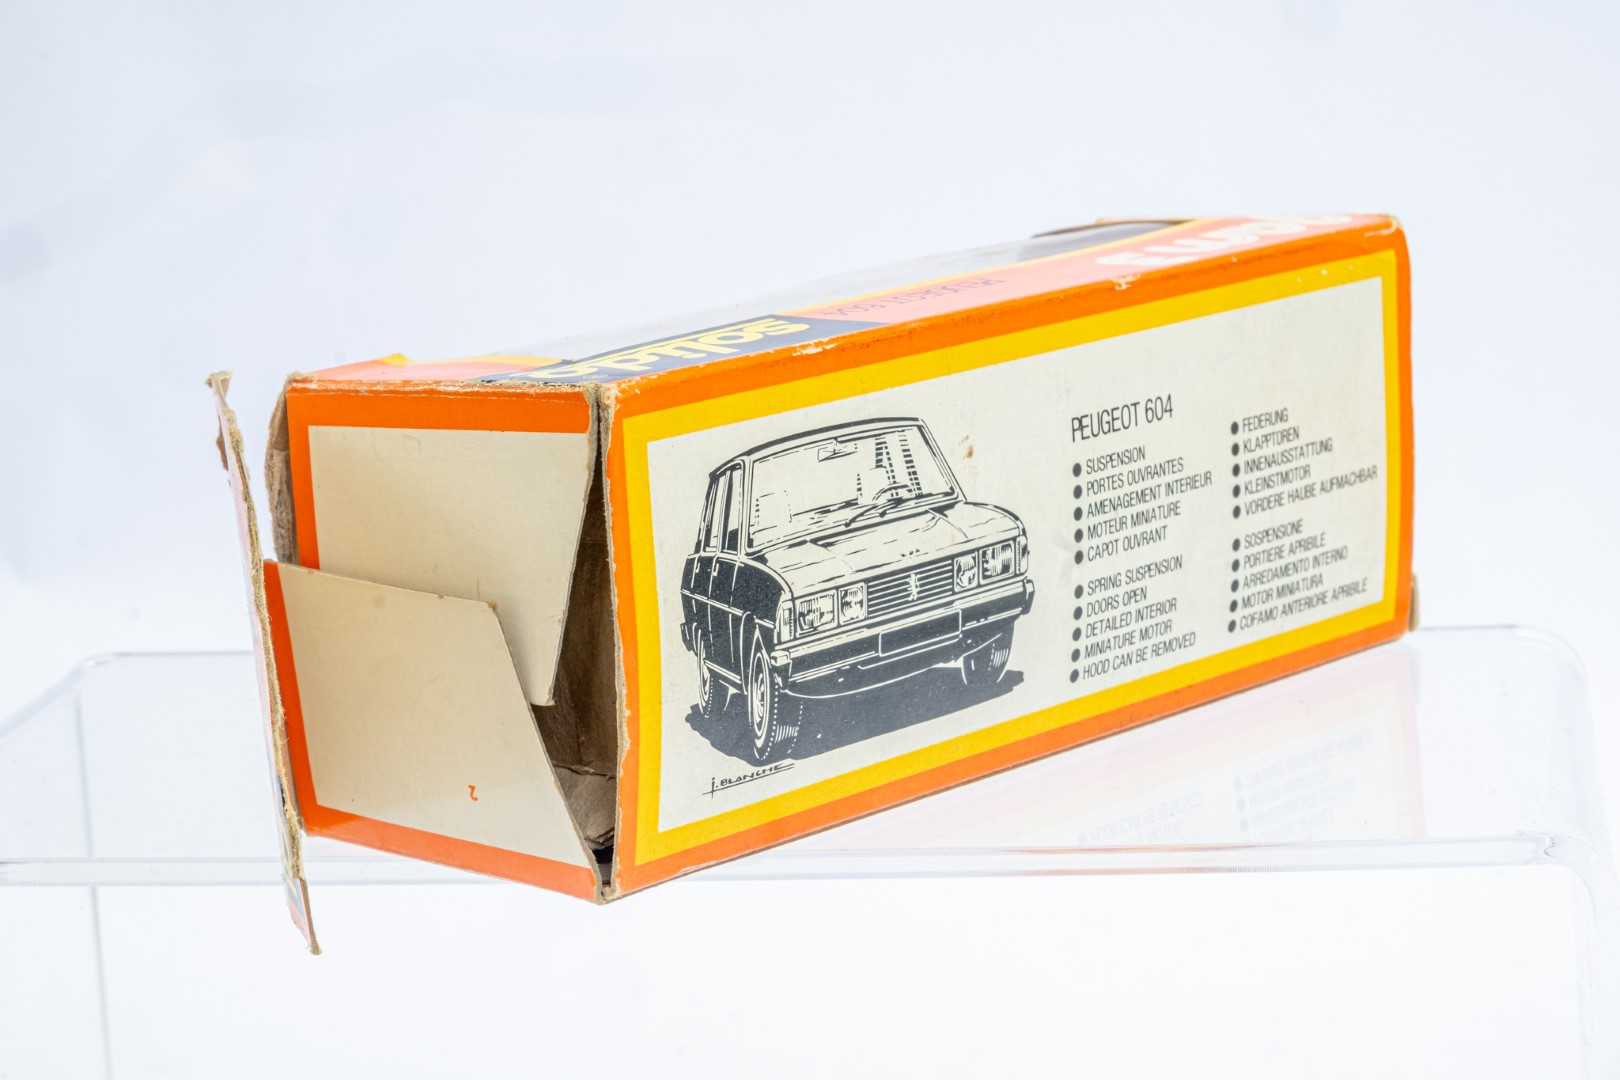 Solido 40 Peugeot 604 - Image 3 of 8